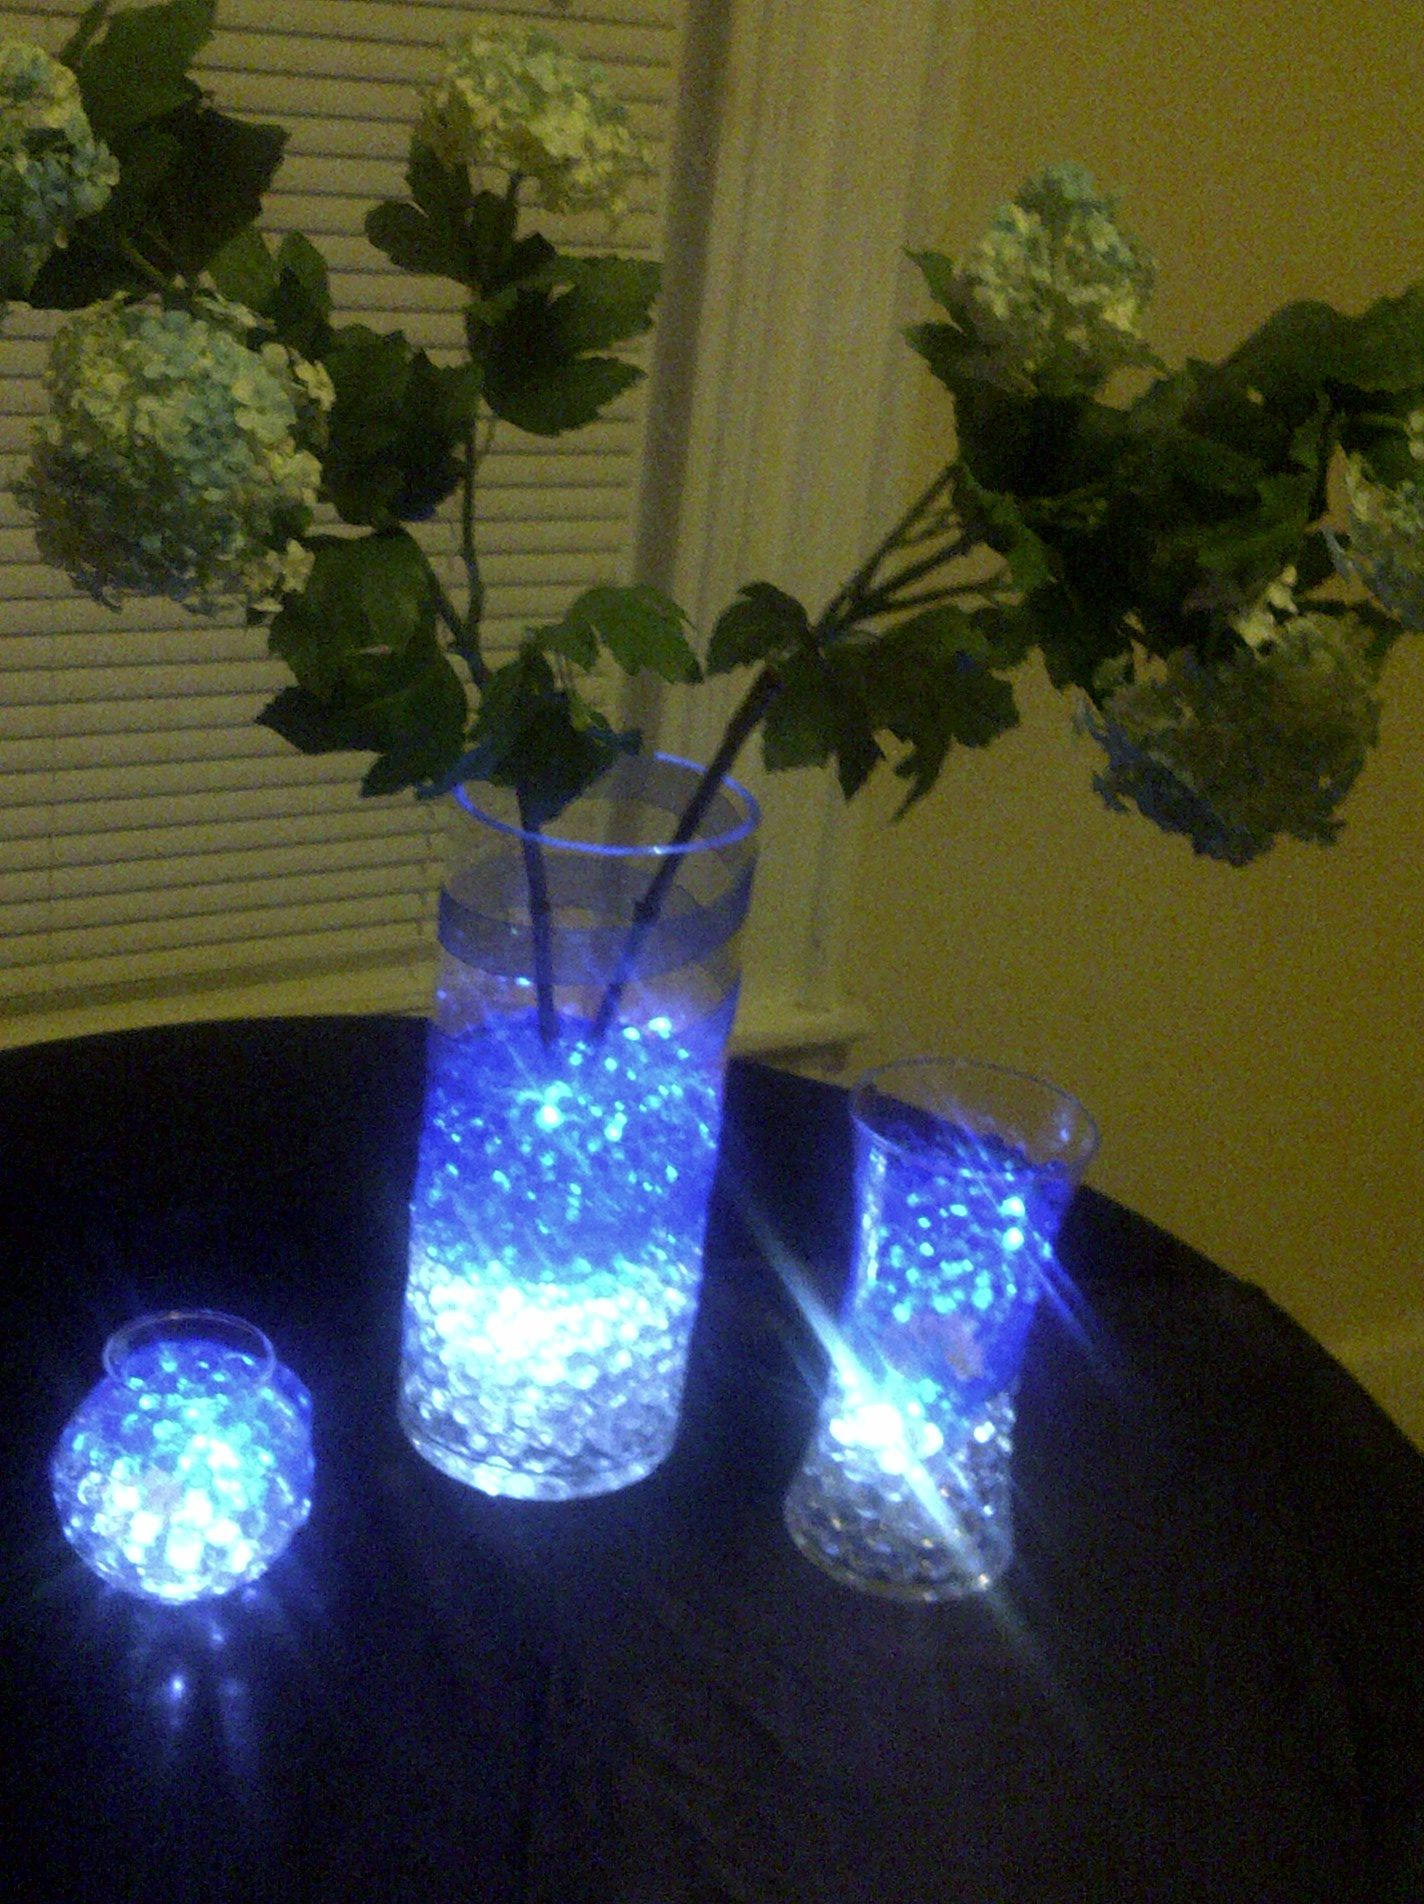 I love doing centerpieces at home did this with material i had like the way theres lights in the rocks without the boring flowers reviewsmspy